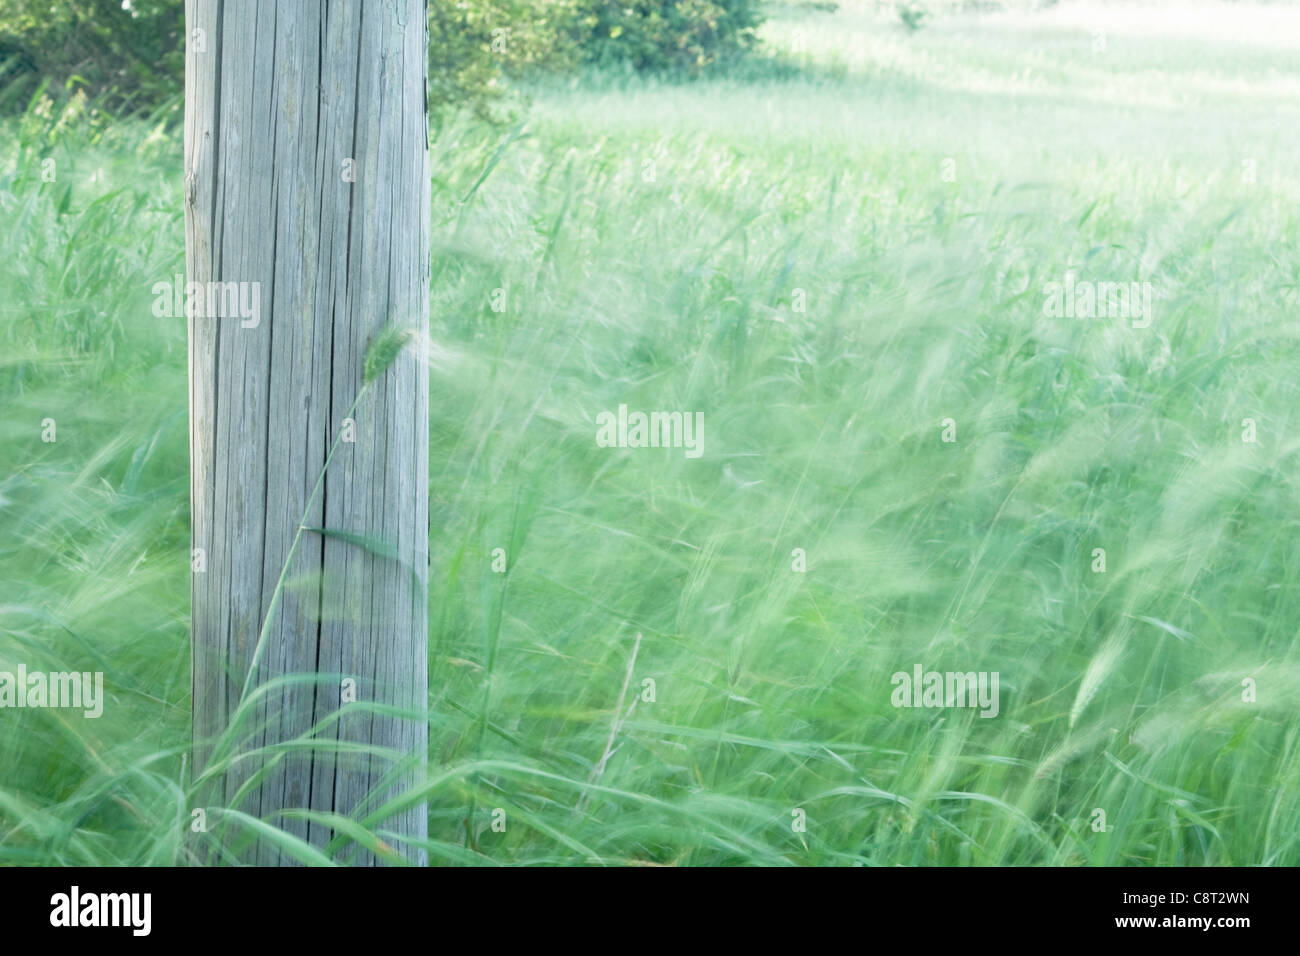 Wooden Pole with Blurred Grass - Stock Image